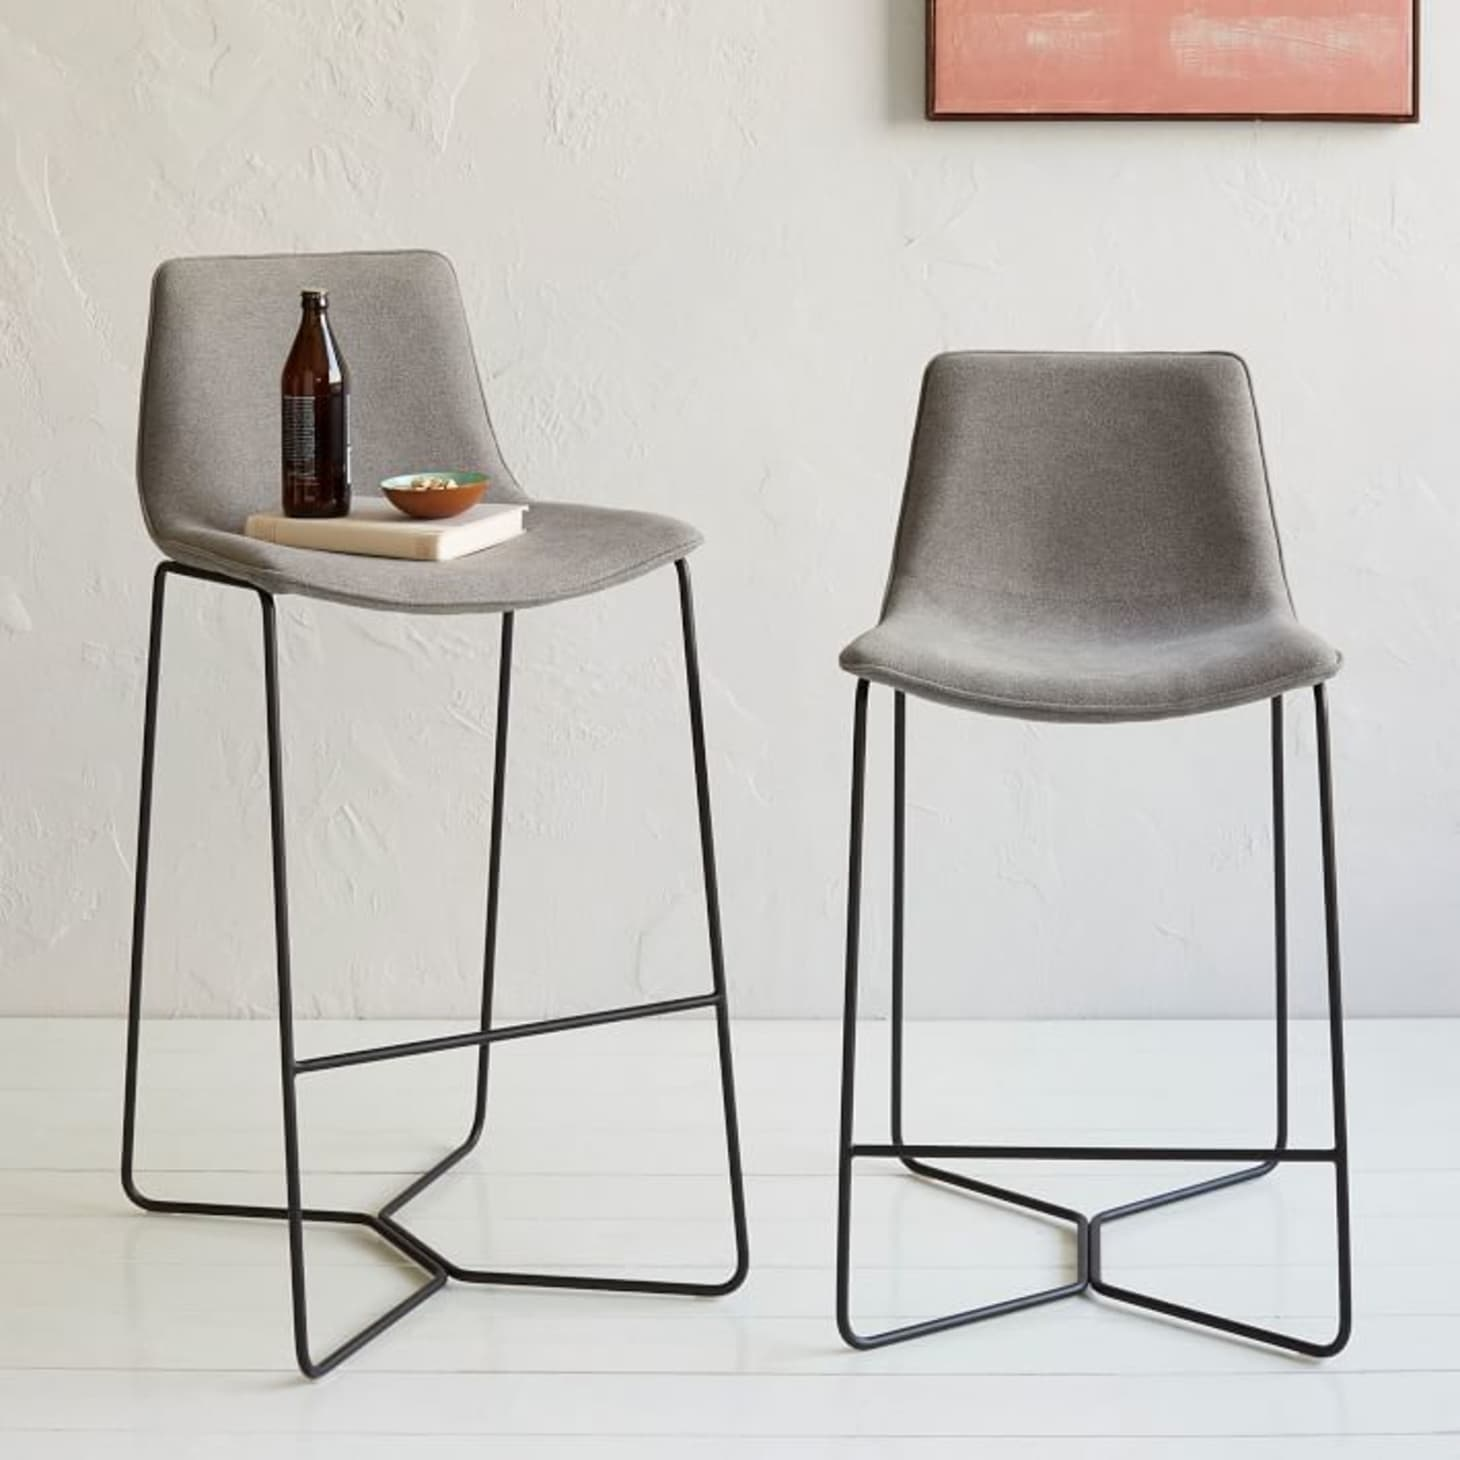 Marvelous Best Bar Stools Counter Stools 2012 Apartment Therapy Ibusinesslaw Wood Chair Design Ideas Ibusinesslaworg